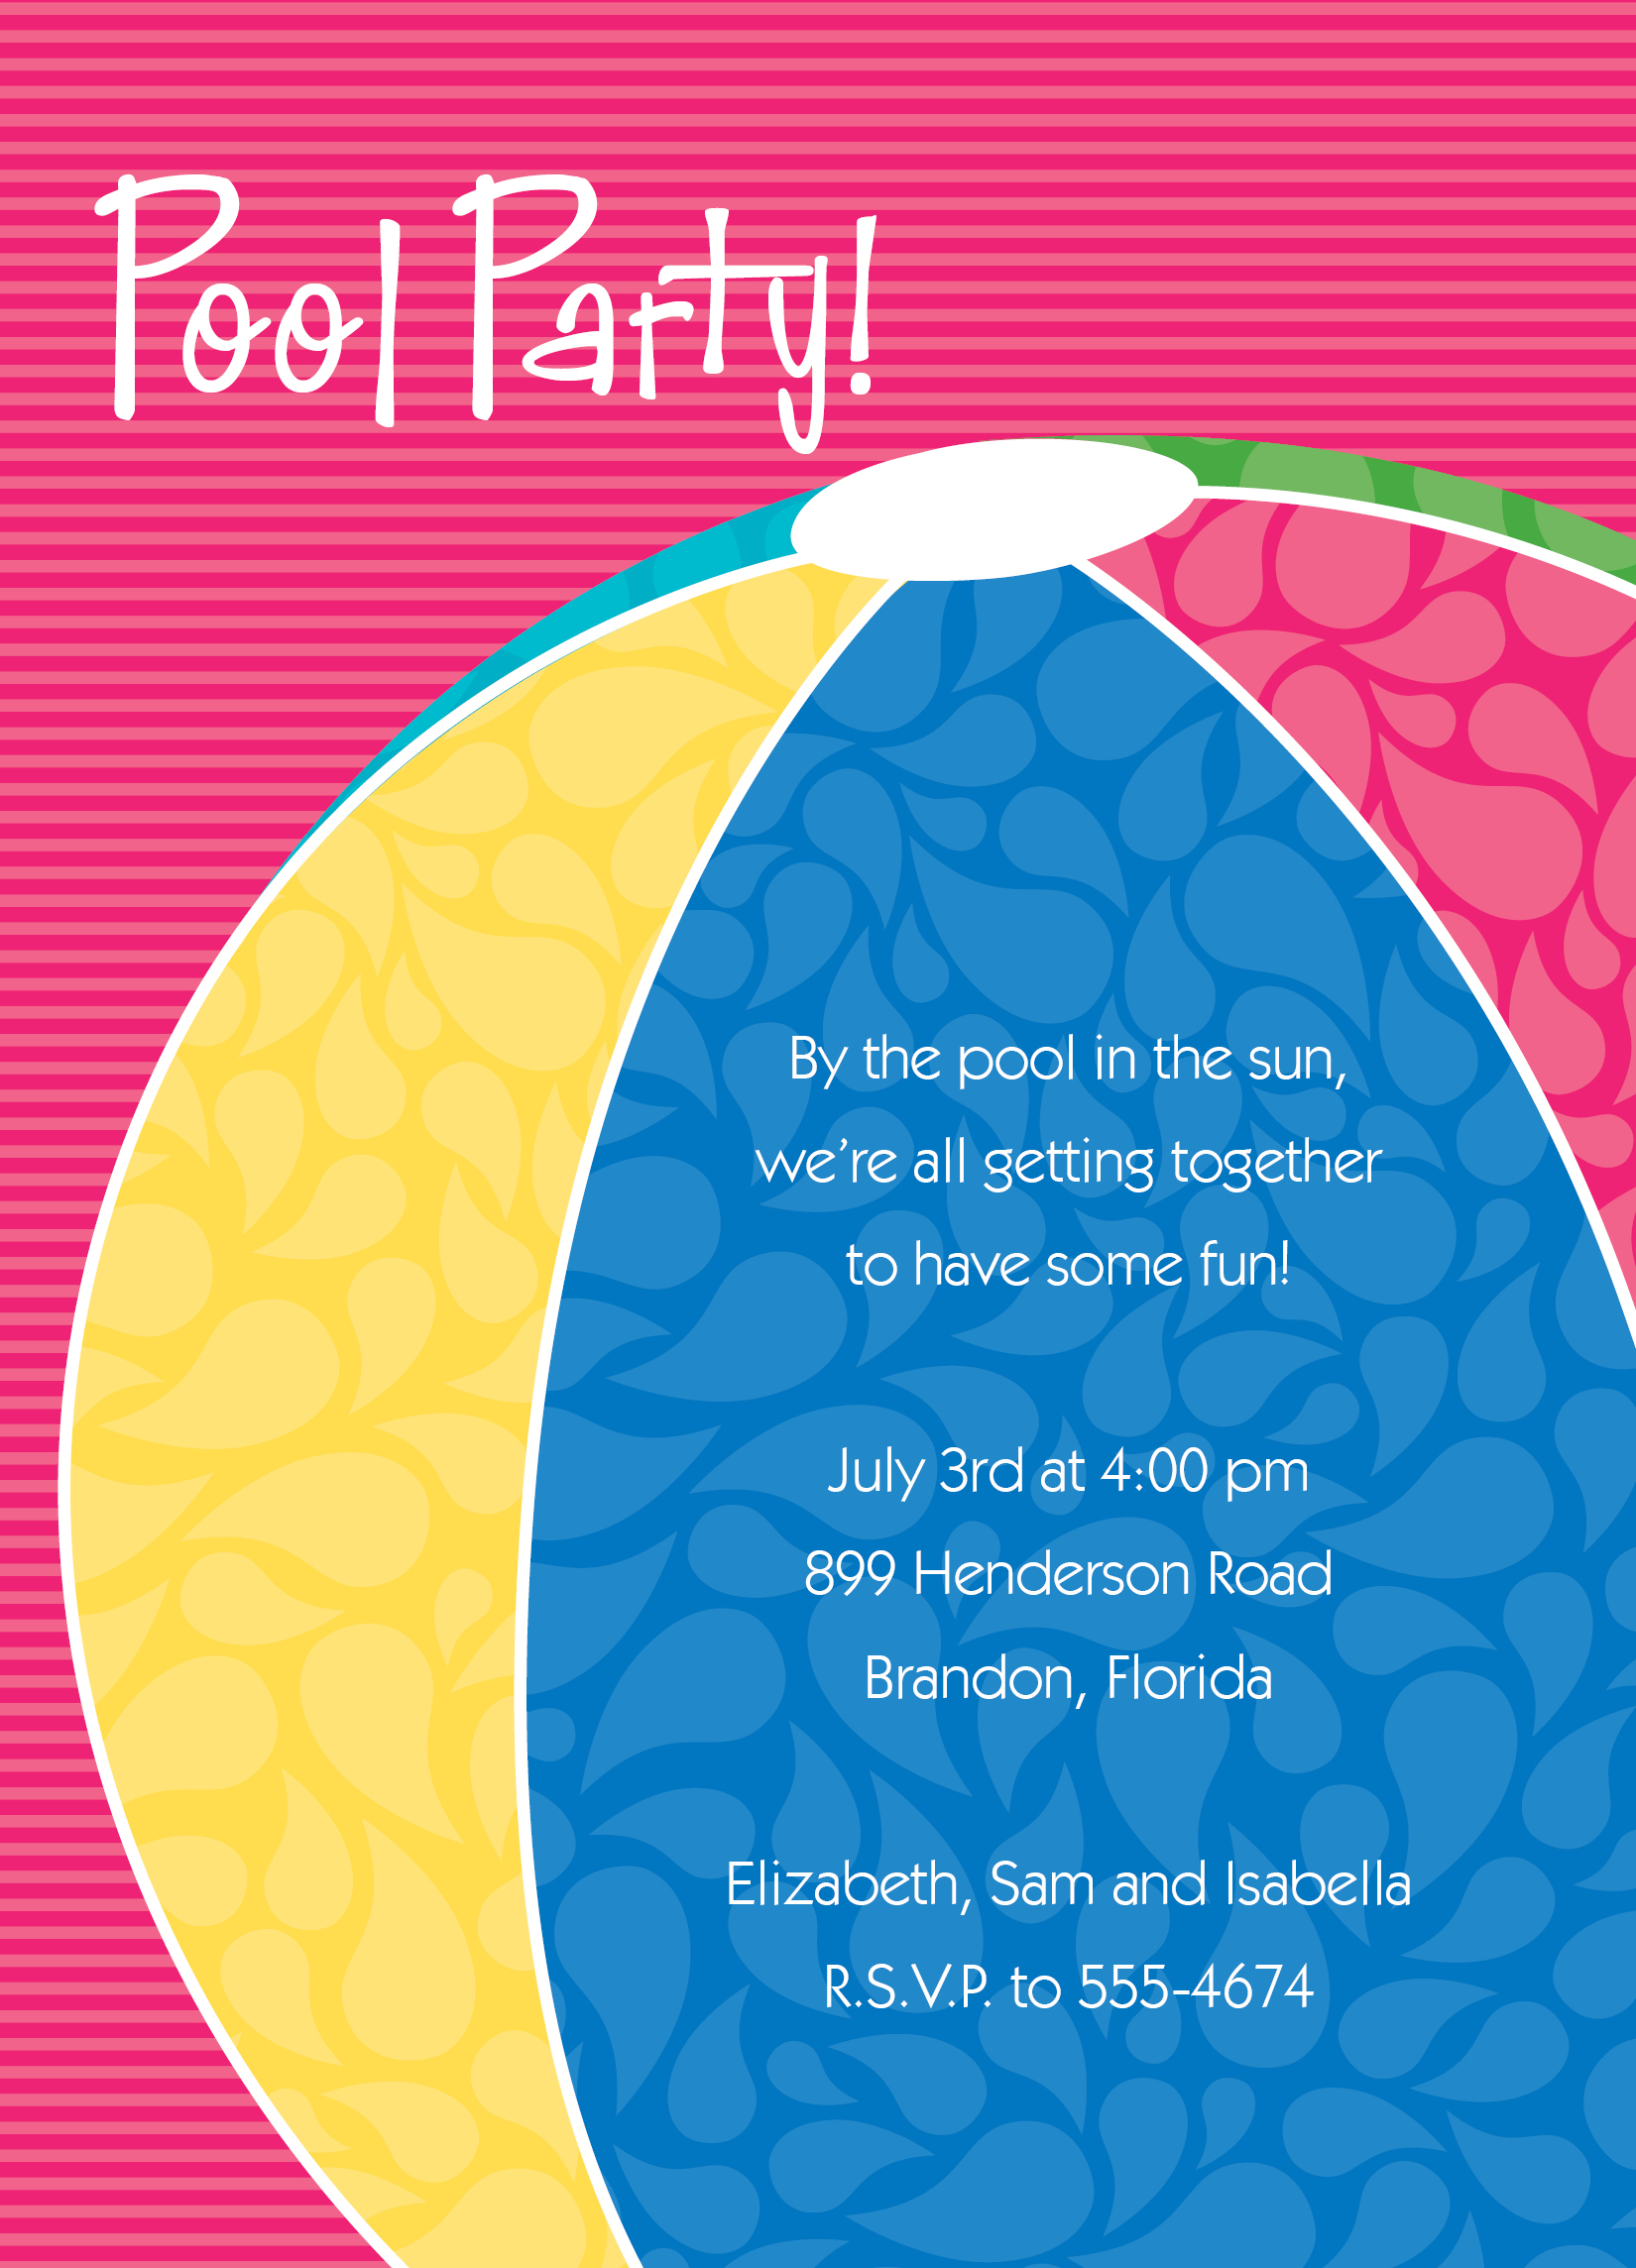 beach themed birthday party invitation wording ; Wonderful-Pool-Birthday-Party-Invitations-with-Pink-Background-Colors-and-Colorful-Ball-Art-Card-also-White-Fonts-Colors